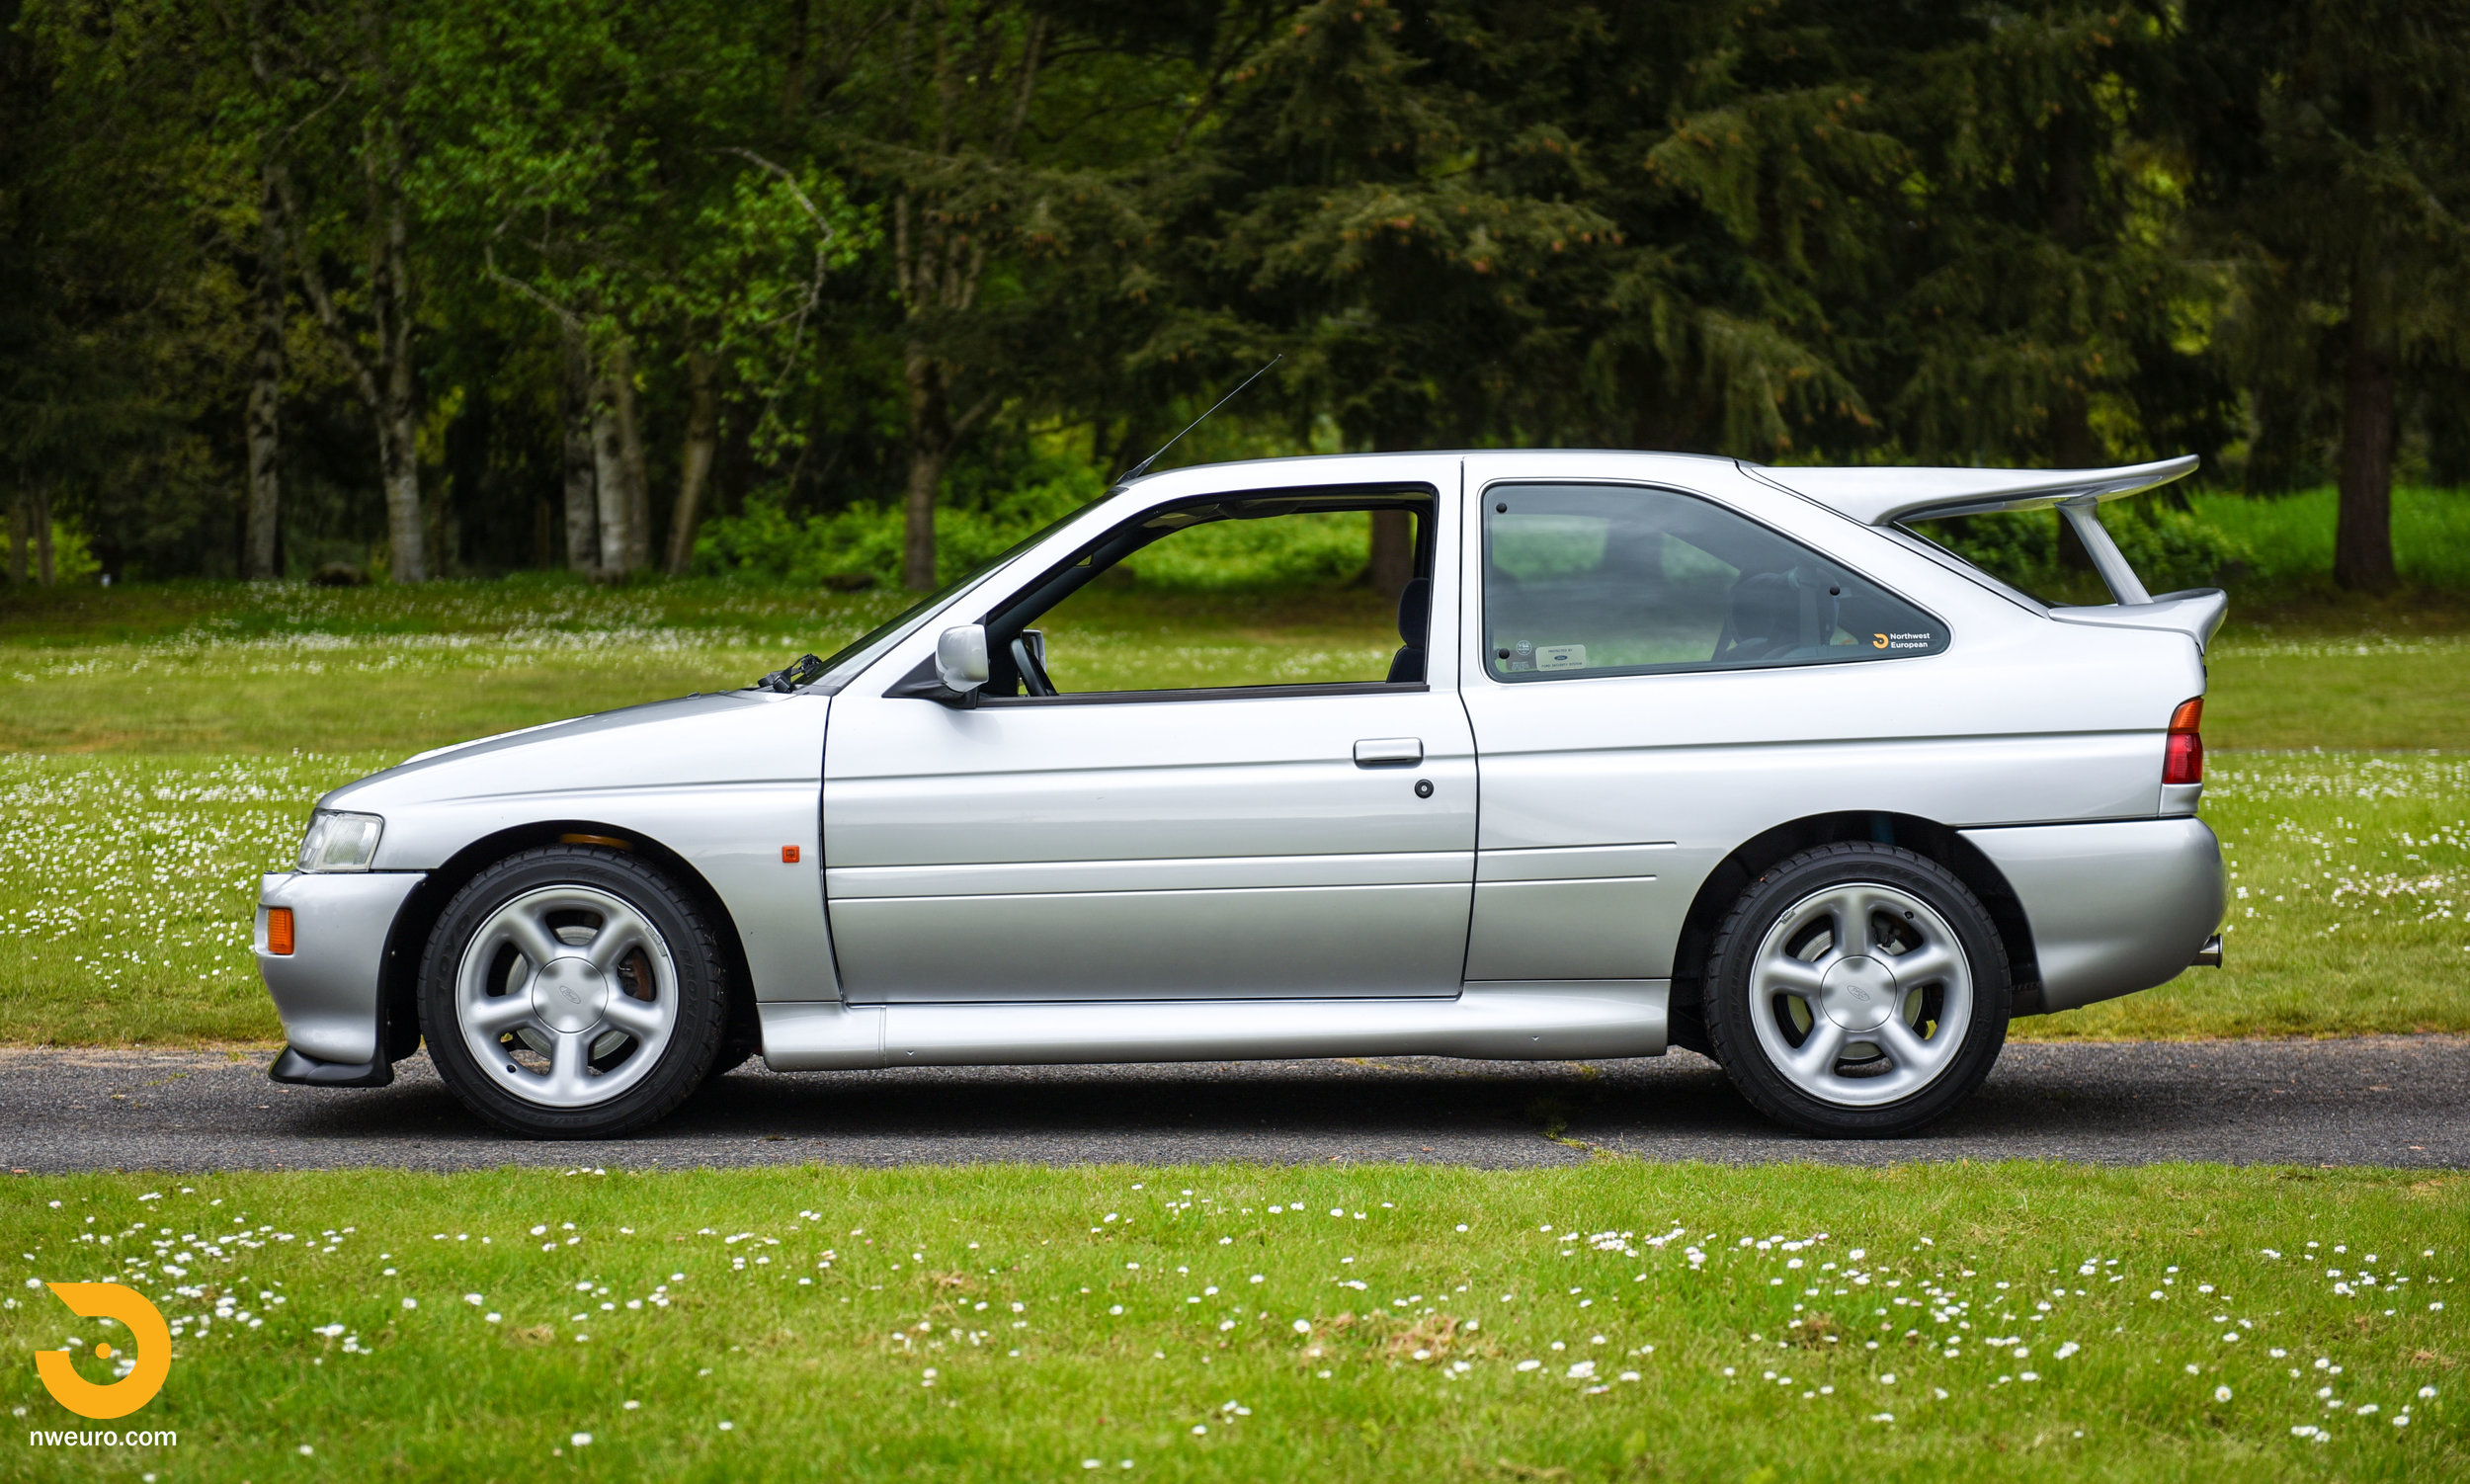 1995 Ford Escort Cosworth RS Silver-12.jpg